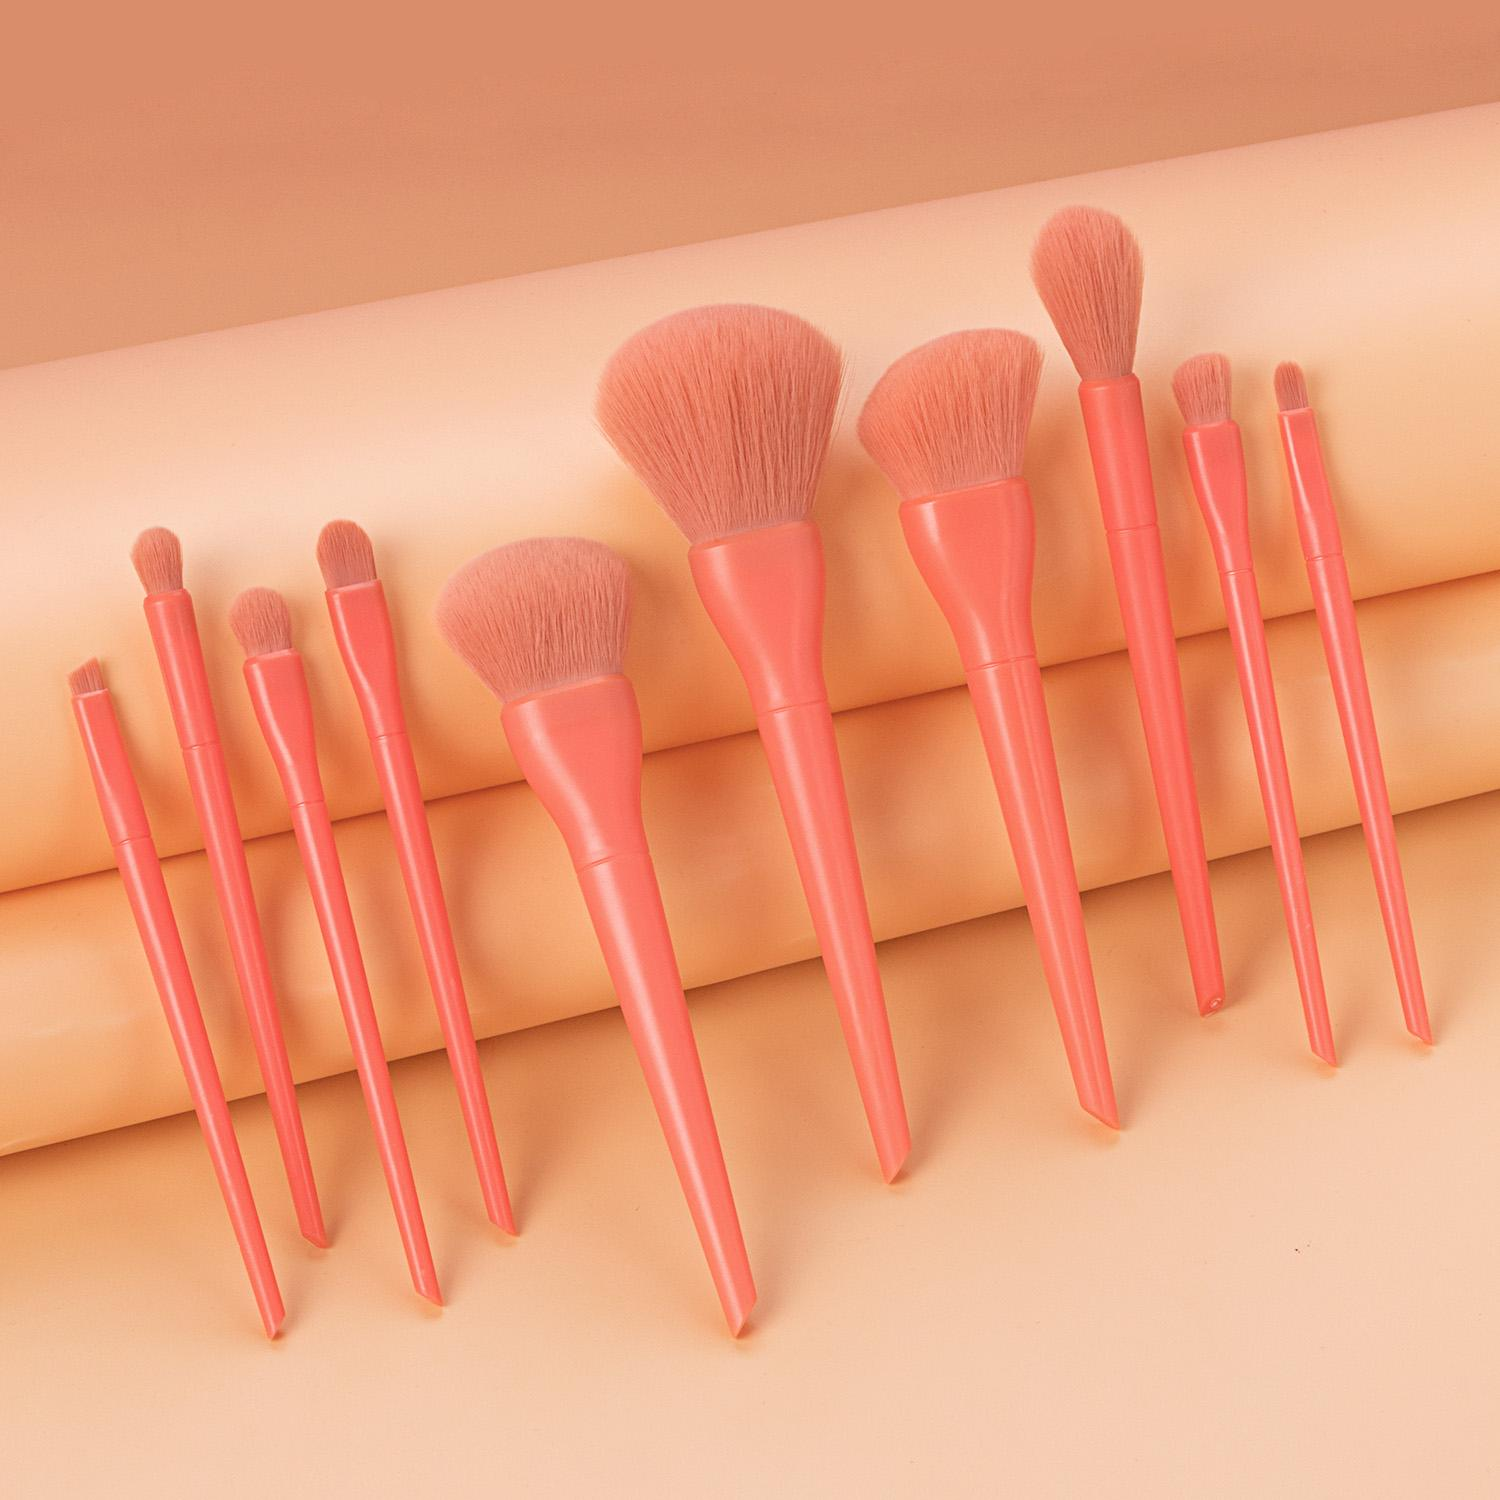 10 PCS Makeup Brush kits sets Beauty Tools Pink Soft brush head Candy red fantasy girl High light powder powder eye shadow brush make up